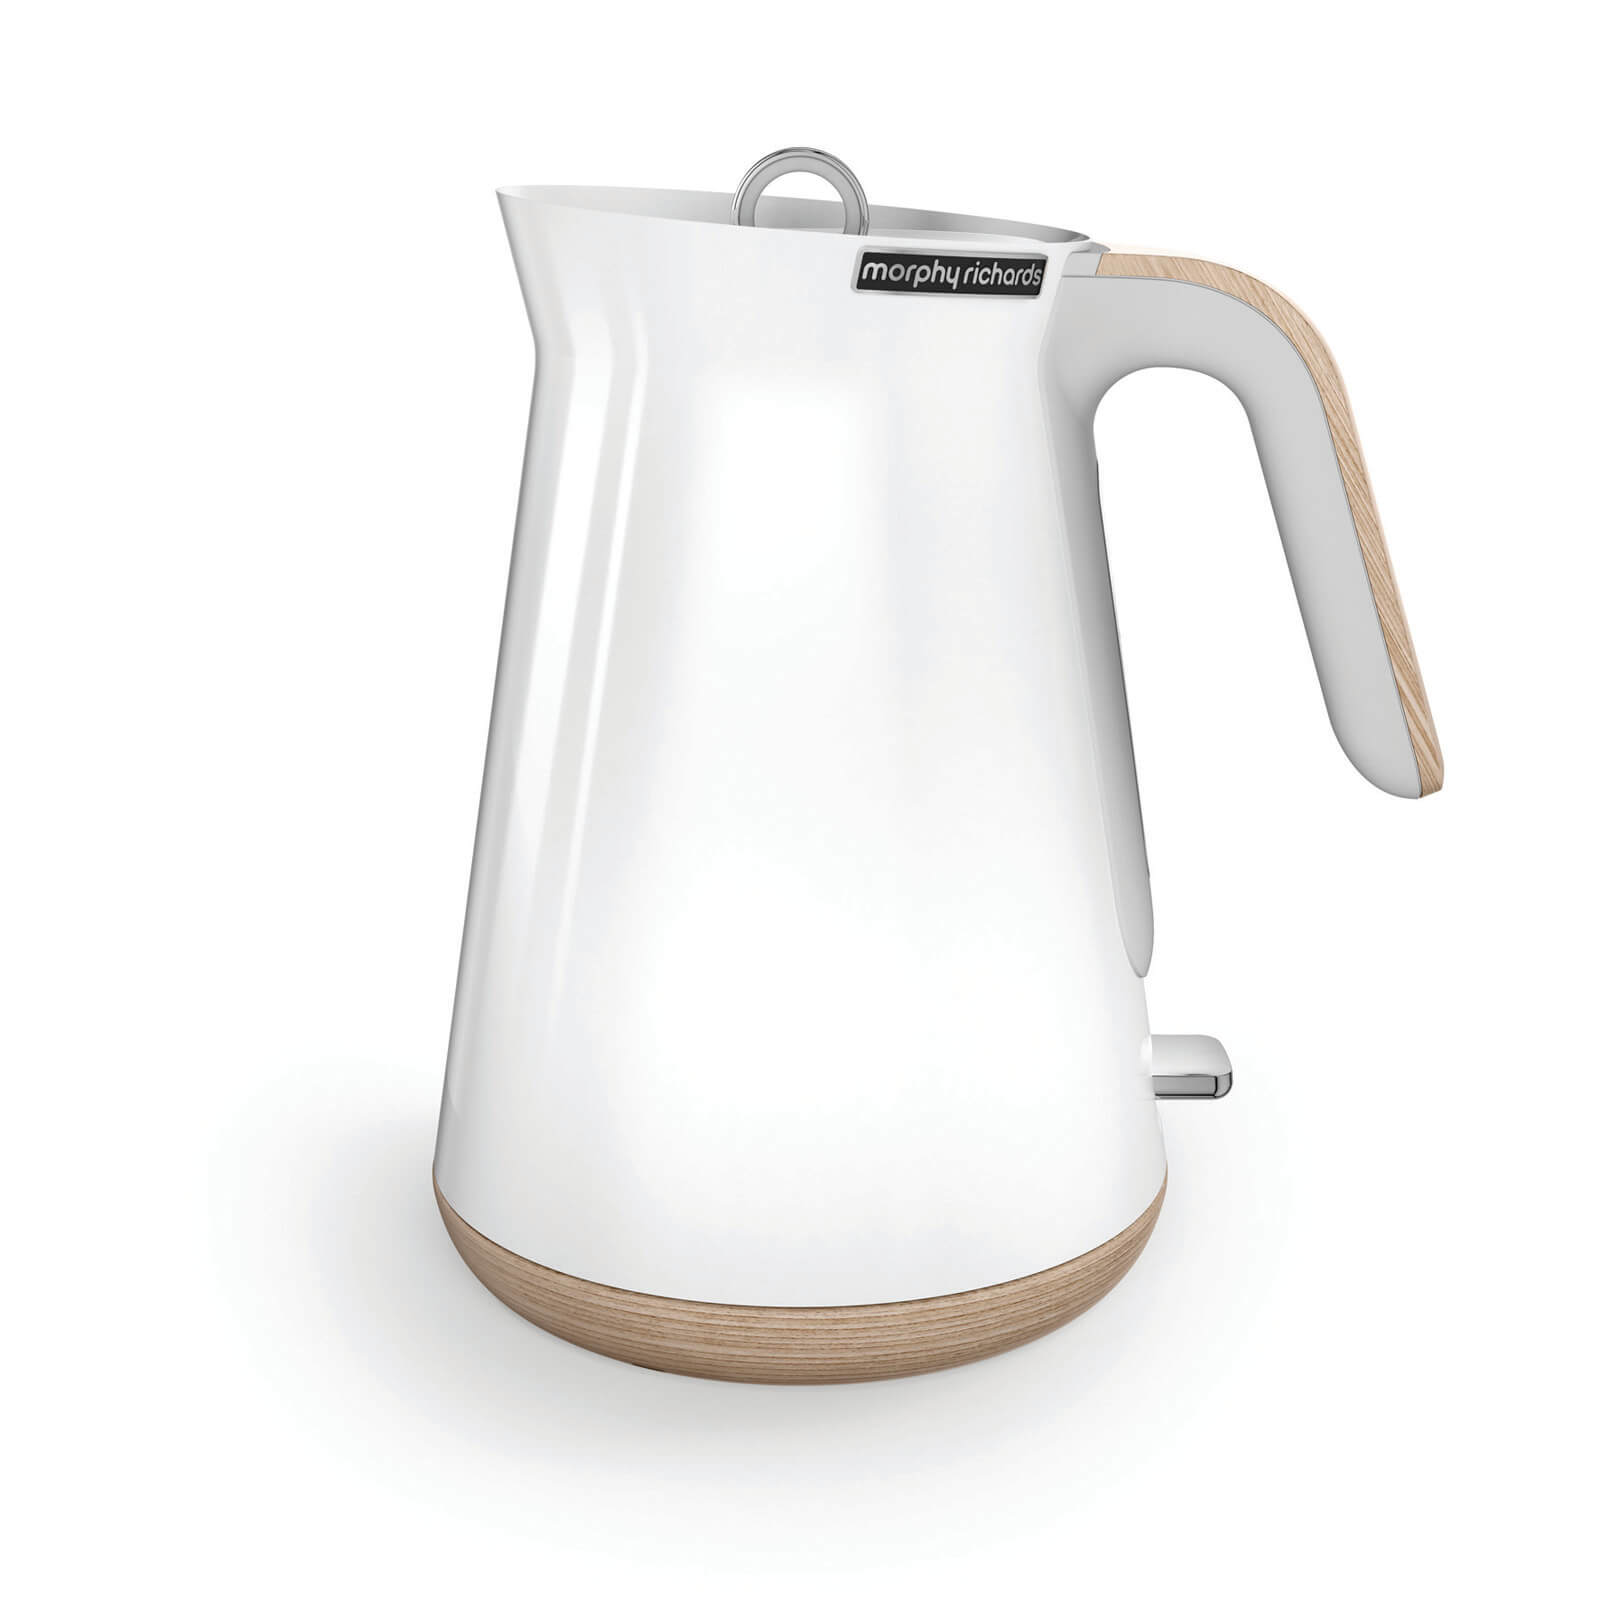 Morphy Richards Aspect Steel Jug Kettle - White/Wood